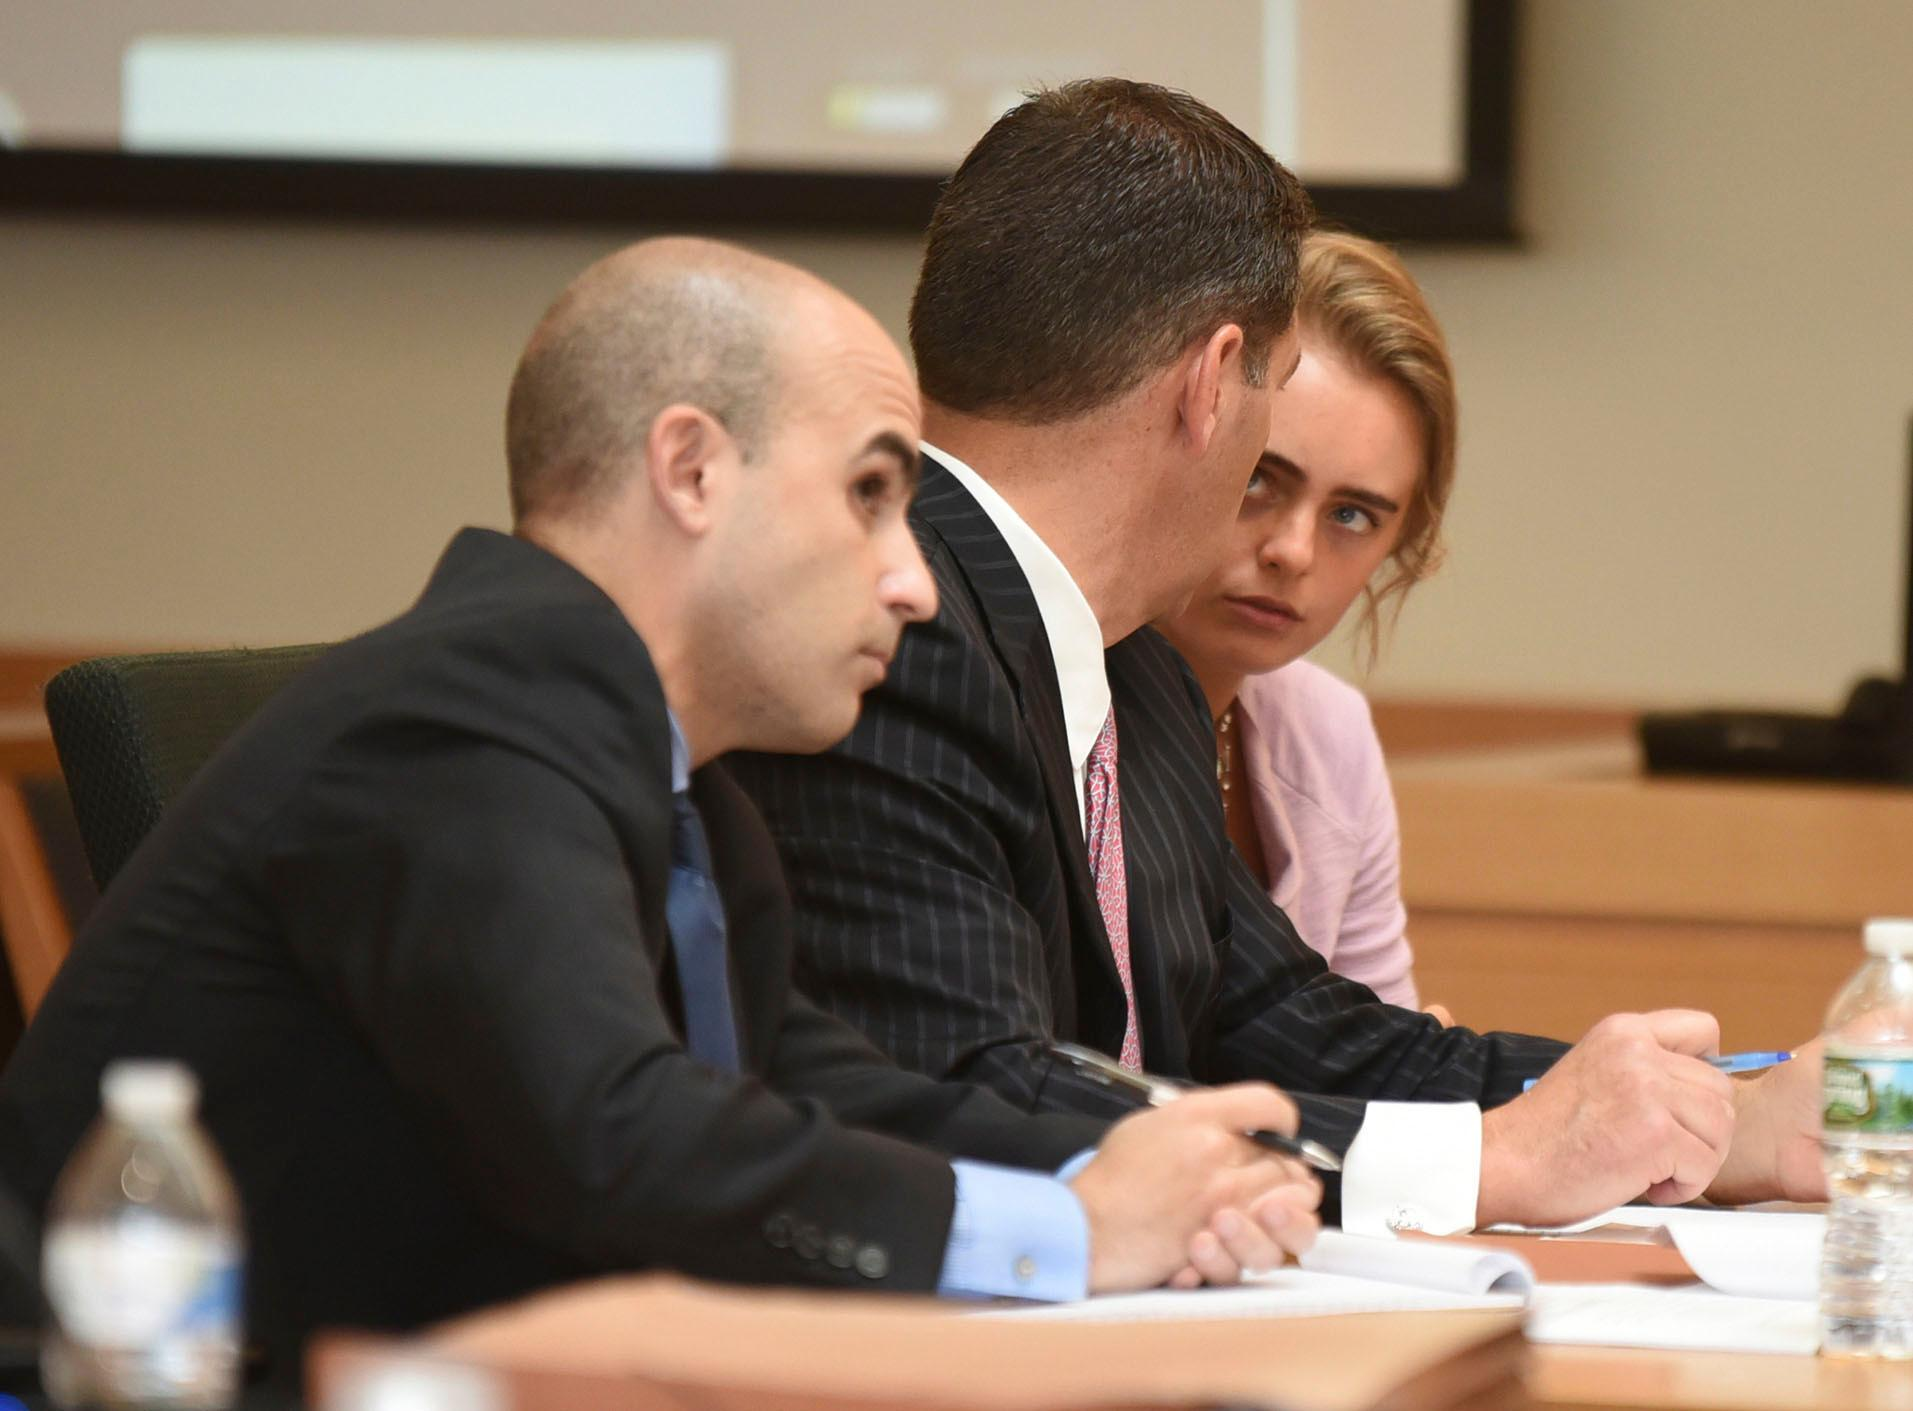 Michelle Carter, right, listens to her attorney Joseph Cataldo, center, as defense attorney Cory Madera looks on in Taunton Juvenile Court on Friday, June 9, 2017. A judge has denied a request for a not-guilty verdict by an attorney for Carter who is charged with involuntary manslaughter for allegedly convincing her boyfriend to kill himself through a series of text messages. (Glenn Silva/Fairhaven Neighborhood News/Pool via AP)